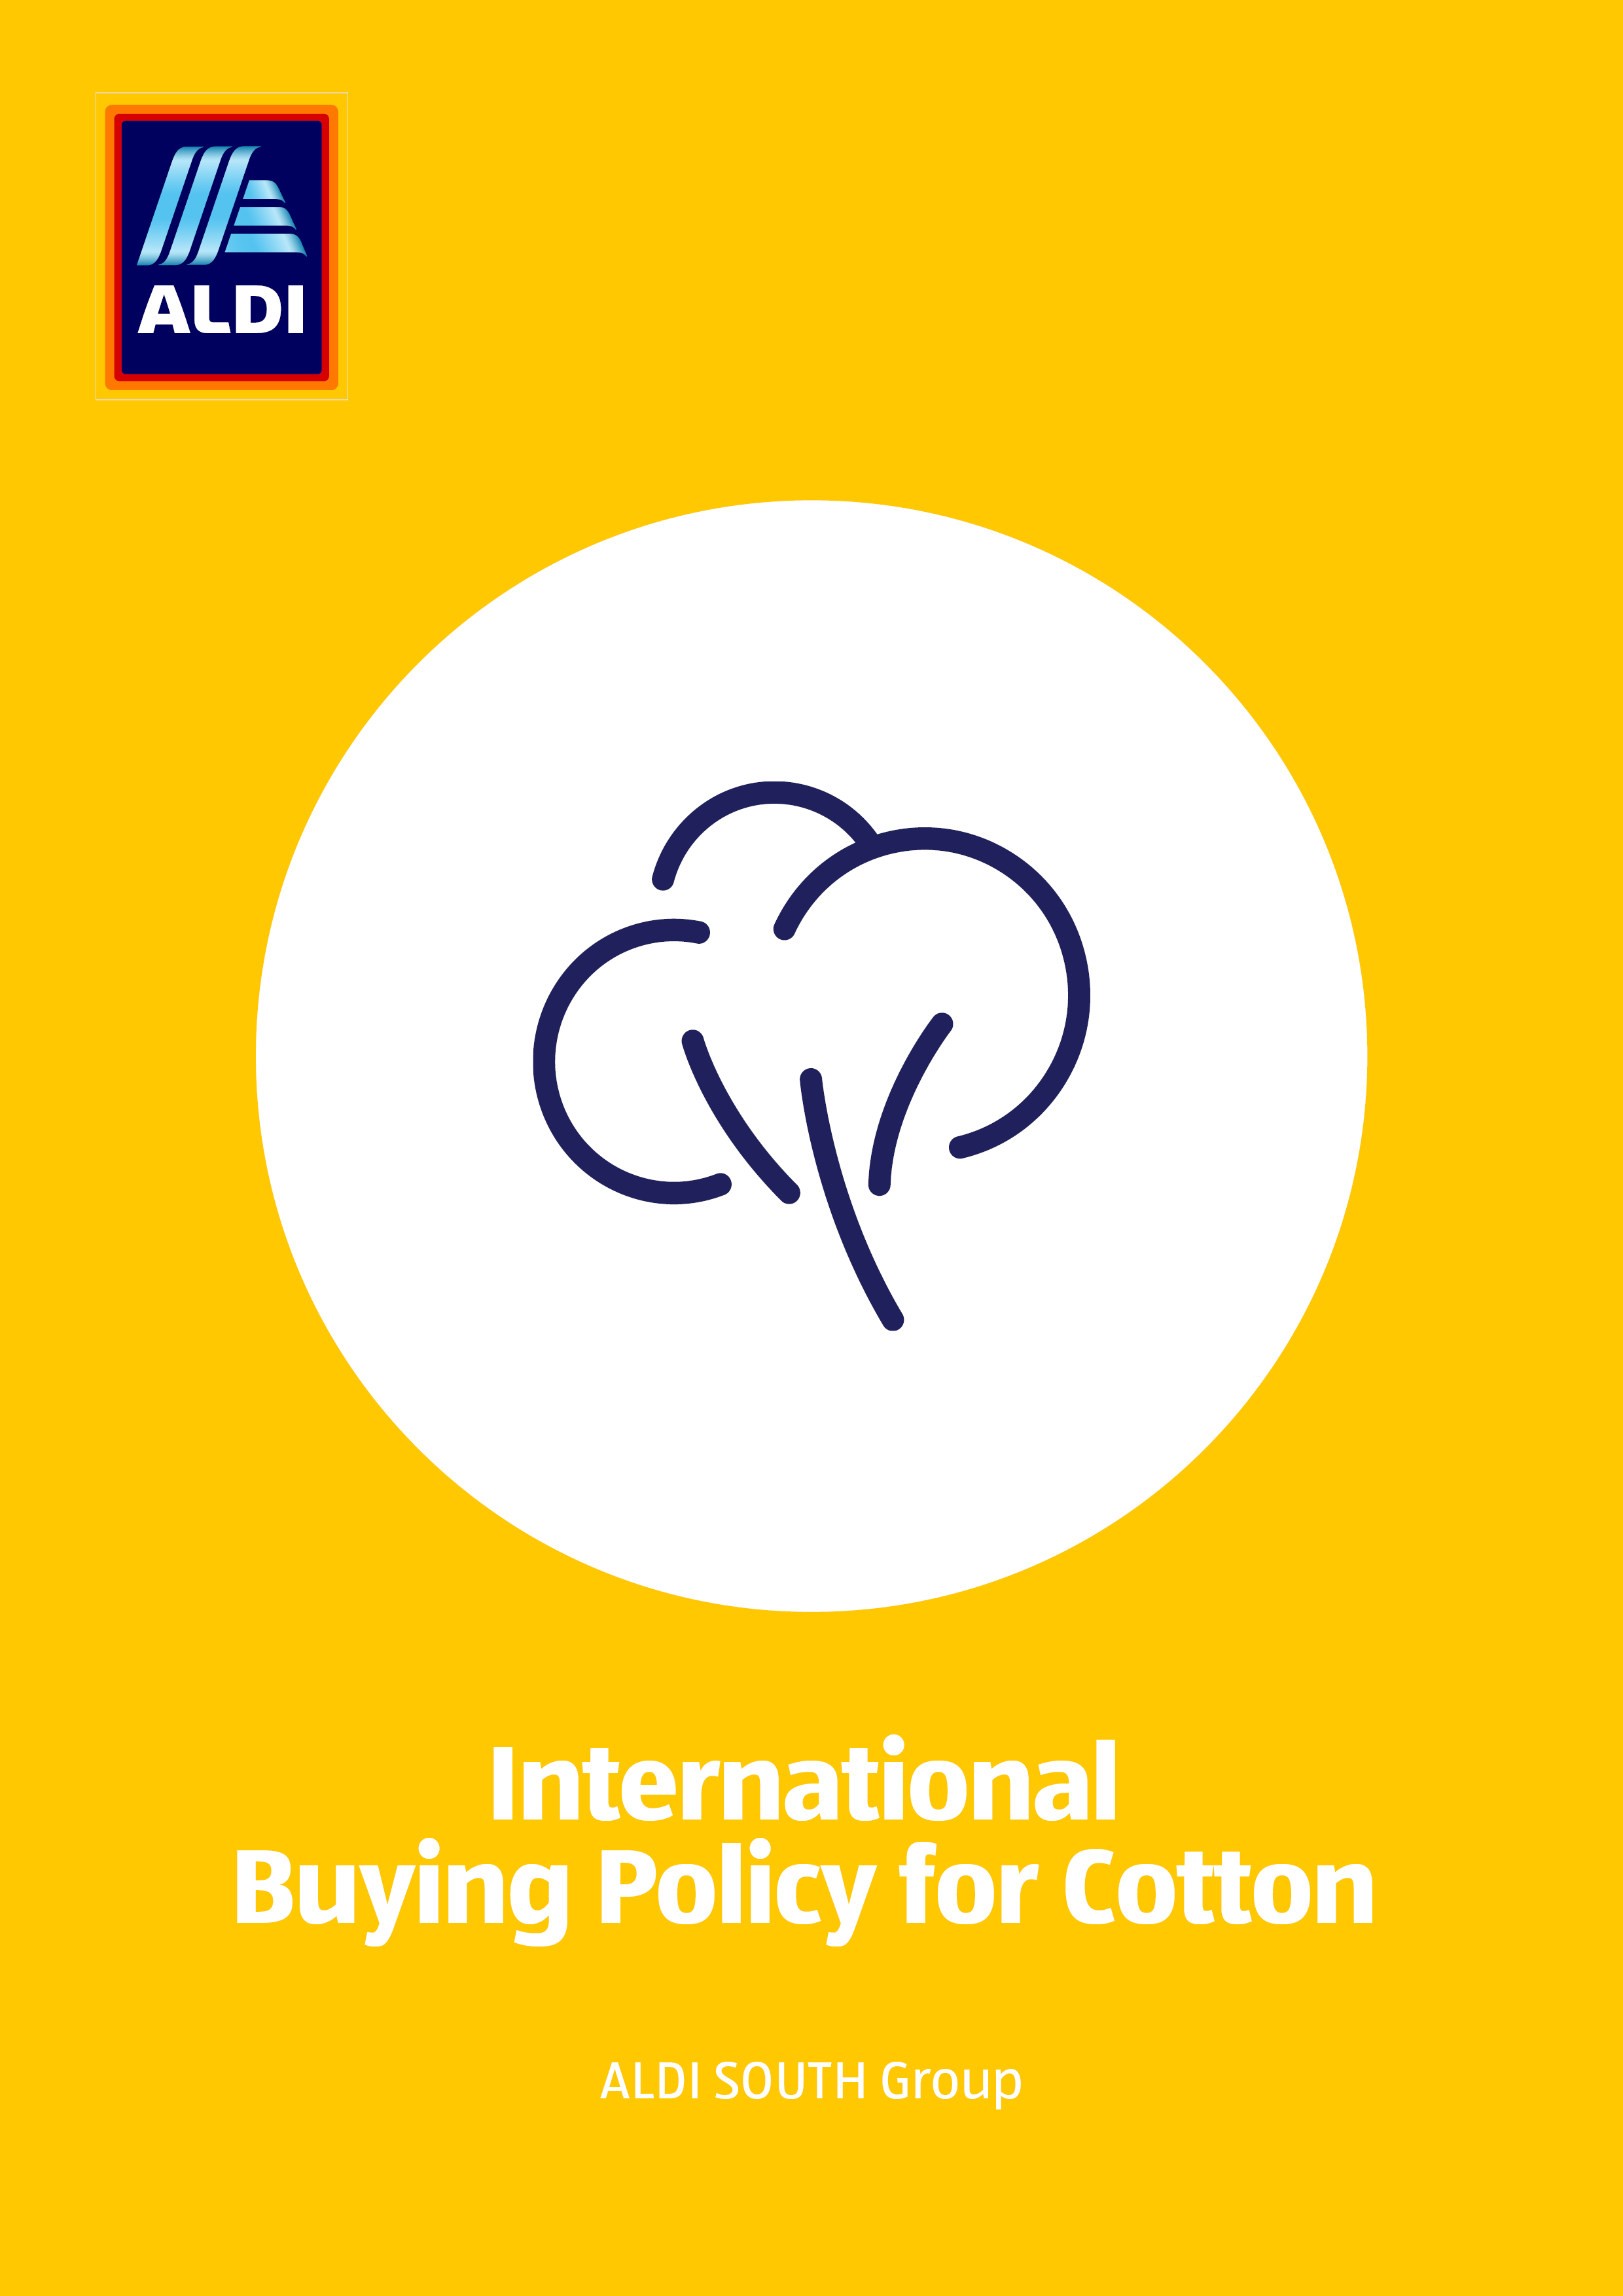 International Buying Policy for Cotton